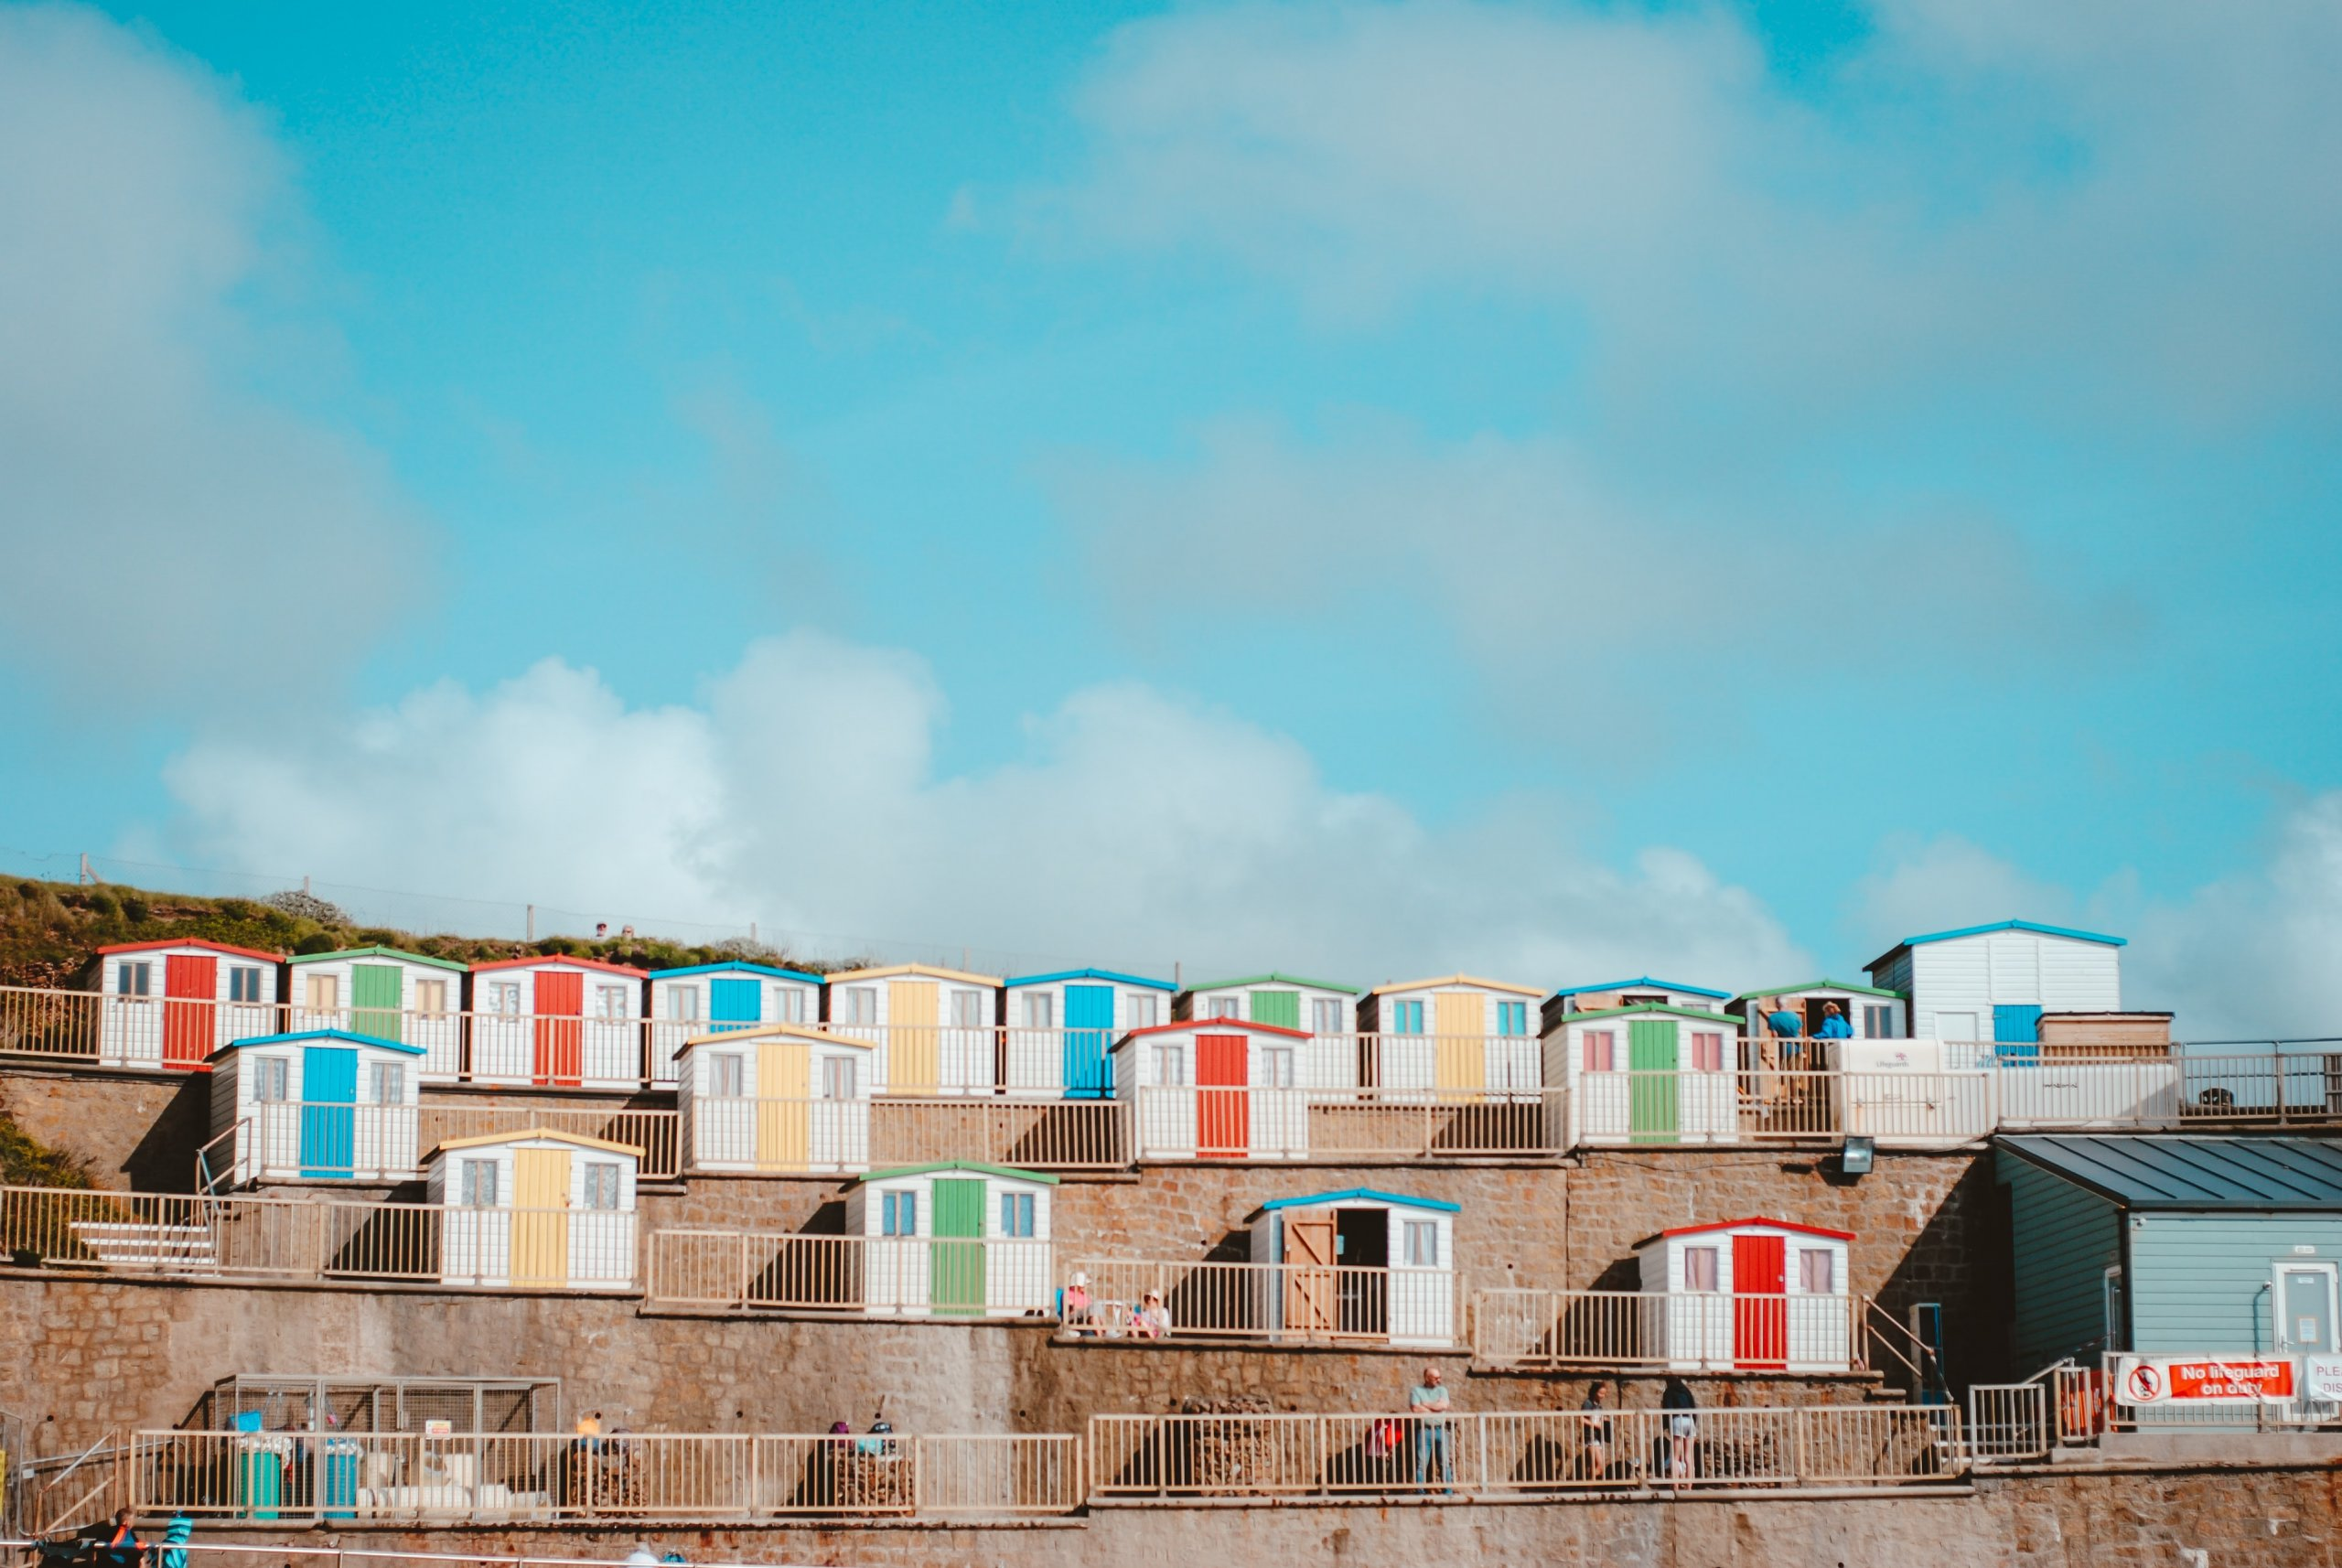 An image of colourful sheds